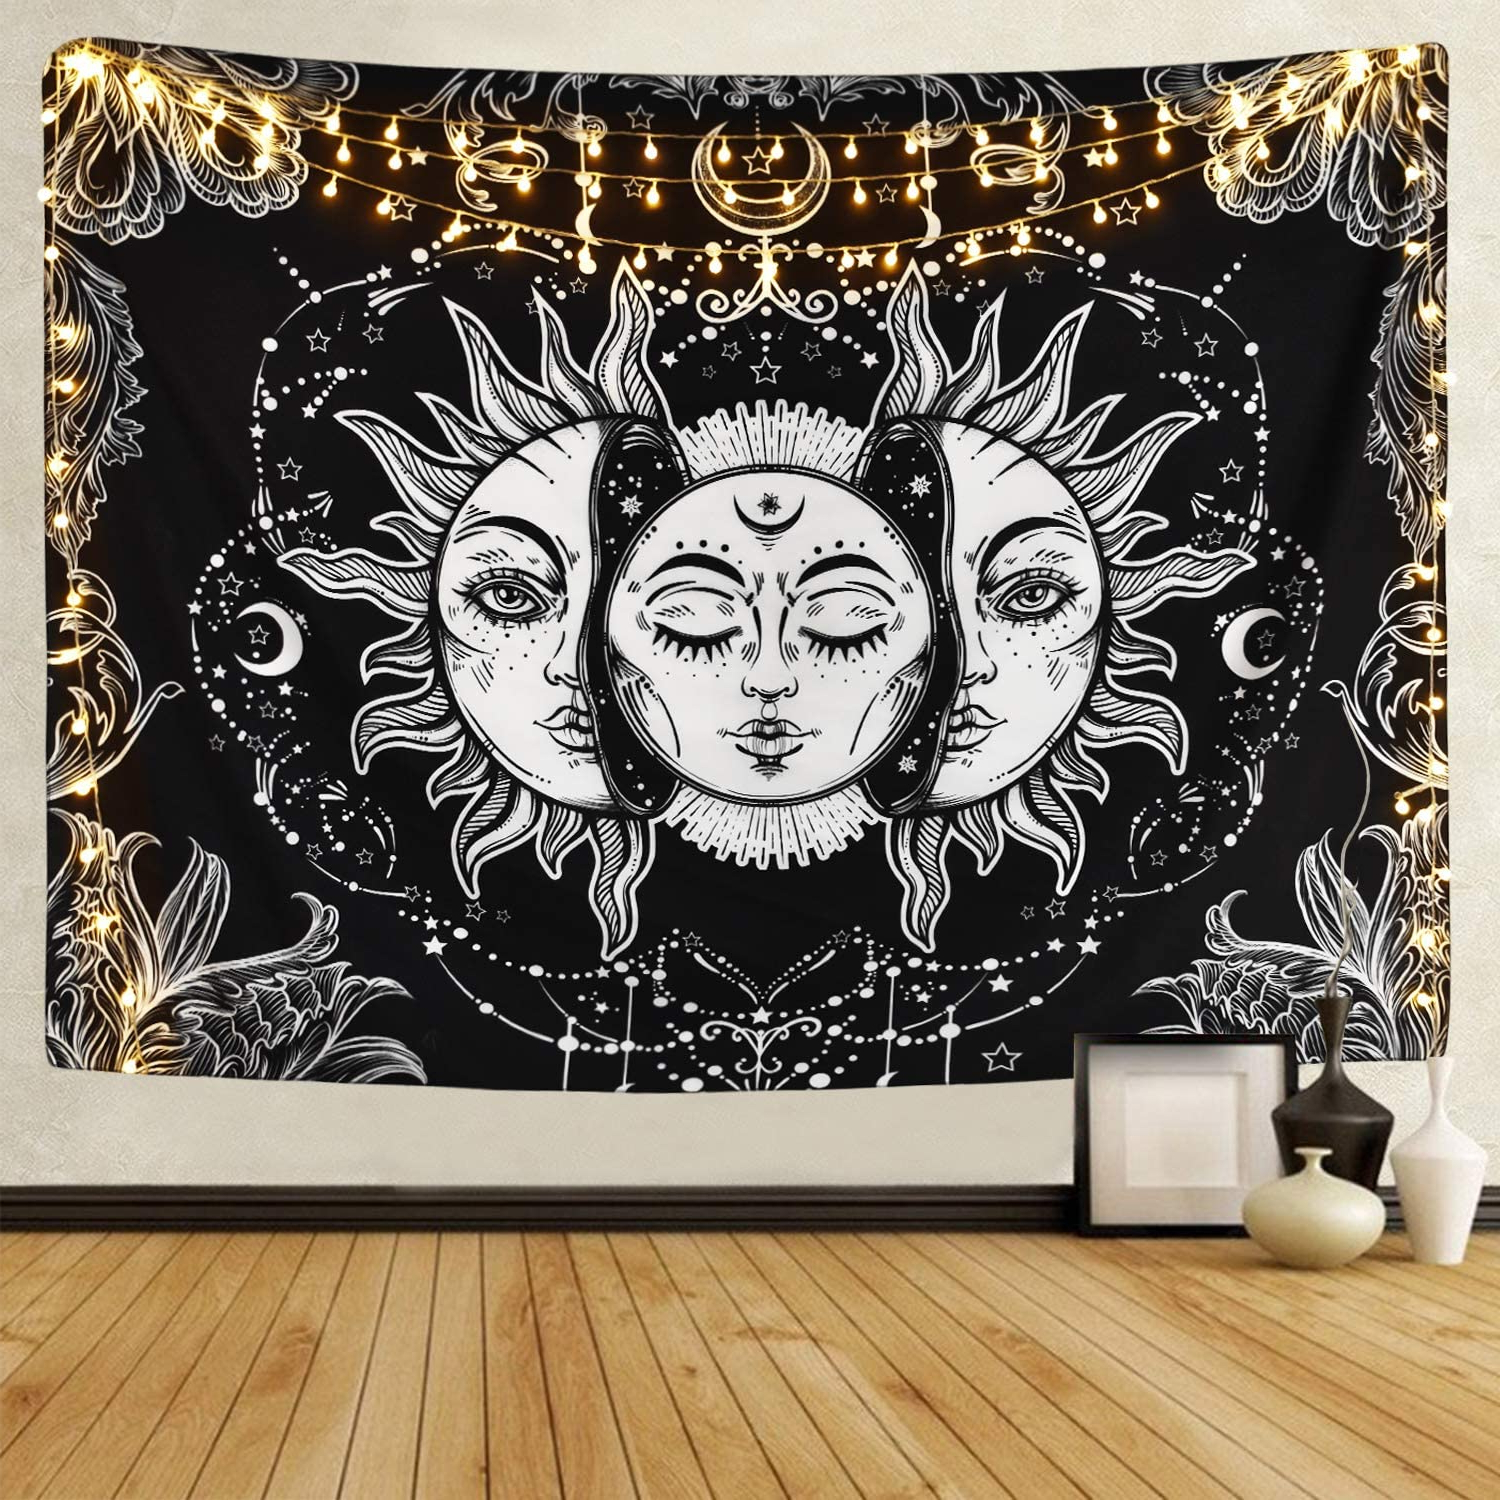 Likiyol Sun And Moon Tapestry Burning Sun With Star Tapestry Psychedelic Tapestry Black And White Mystic Tapestry Wall Hanging Inside Most Current Blended Fabric Celestial Wall Hangings (set Of 3) (View 7 of 20)